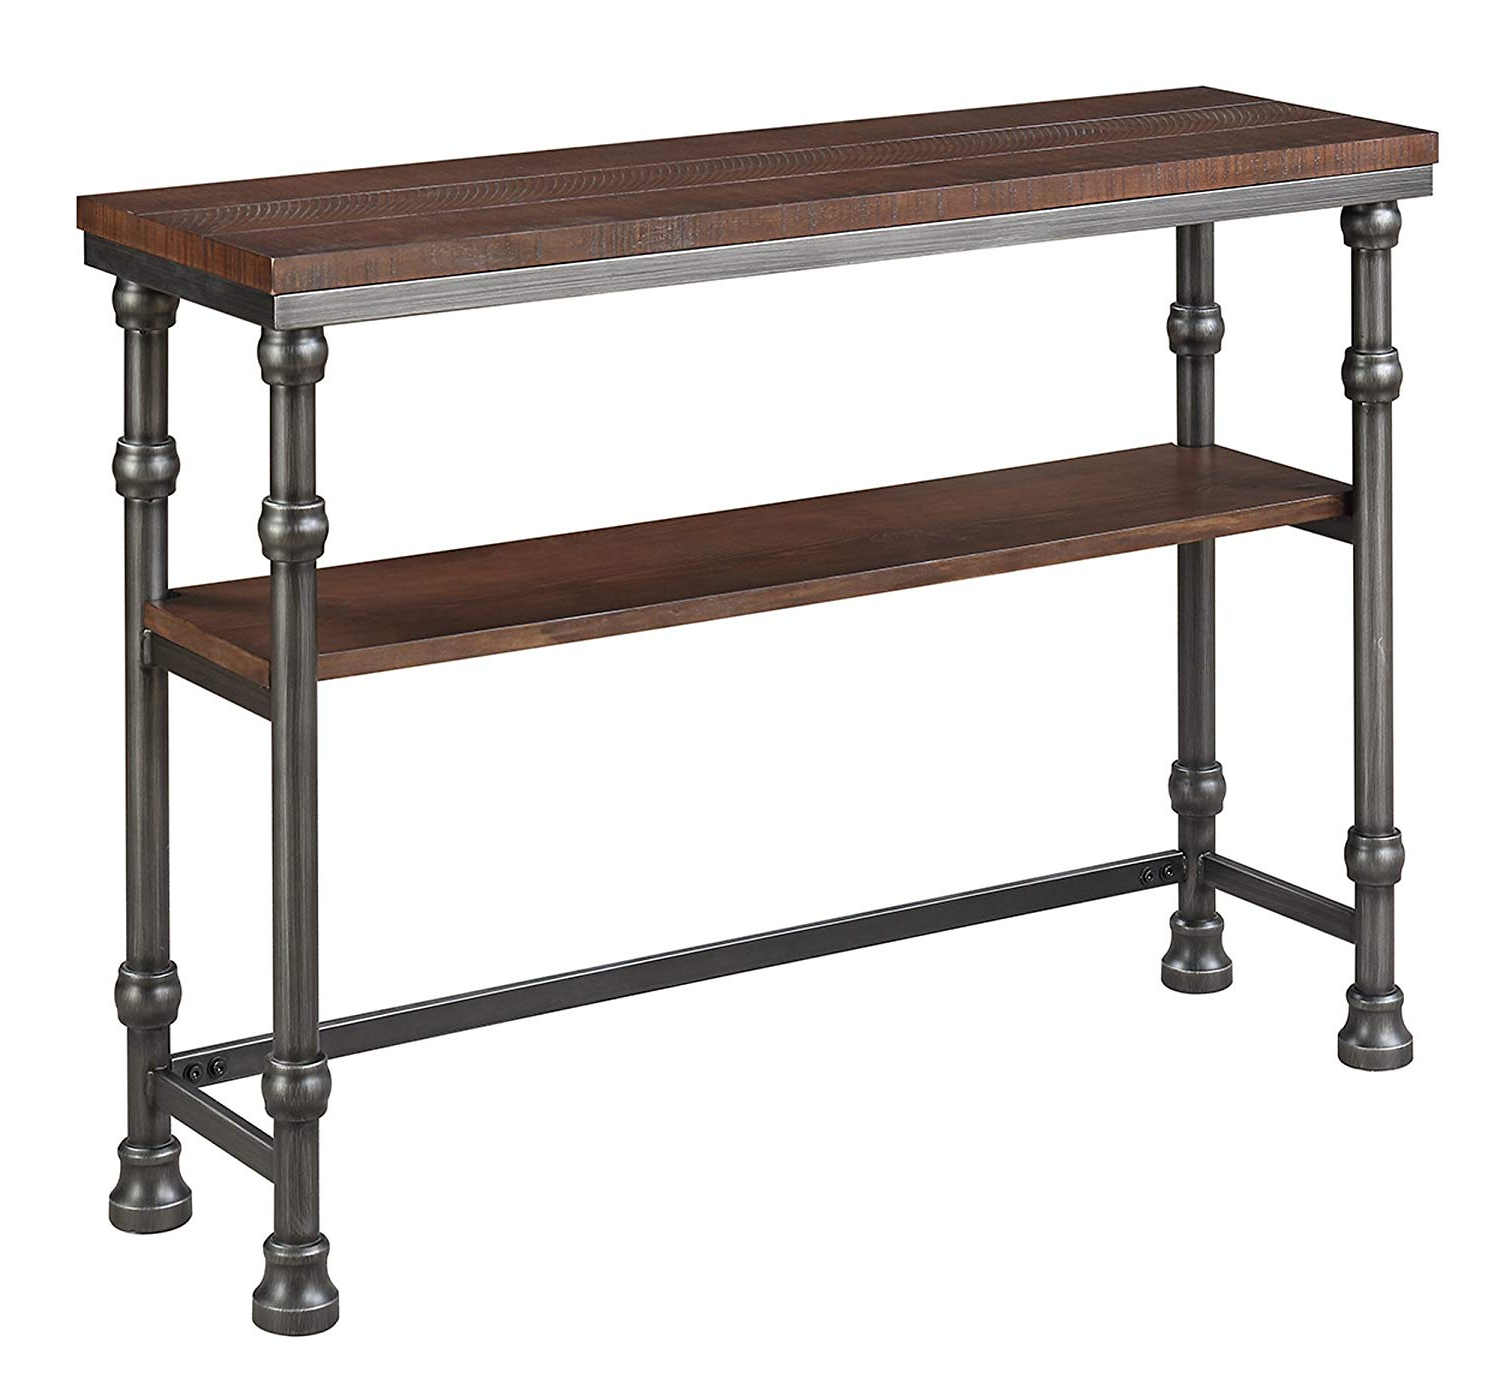 Amazon: Convenience Concepts 171199 Console Table: Kitchen & Dining Intended For 2018 Yukon Grey Console Tables (View 9 of 20)